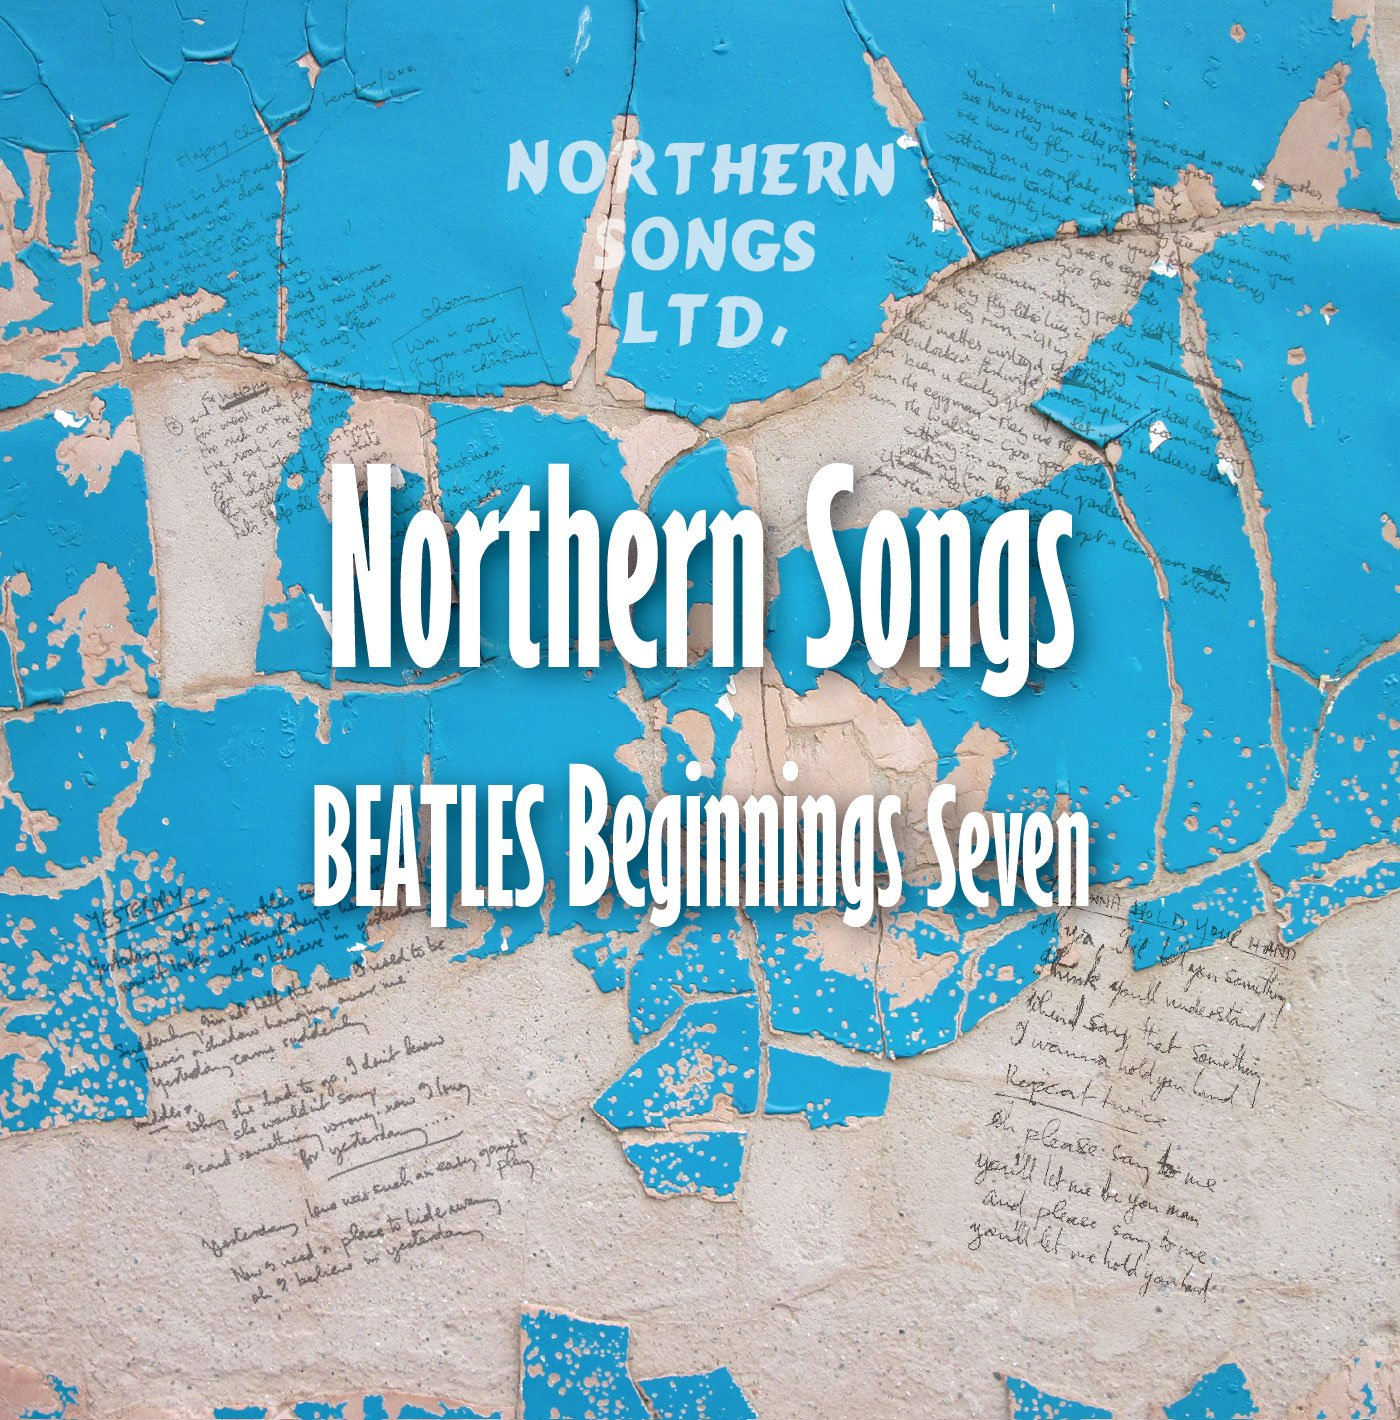 Beatles Beginnings Volume Seven: Northern Songs